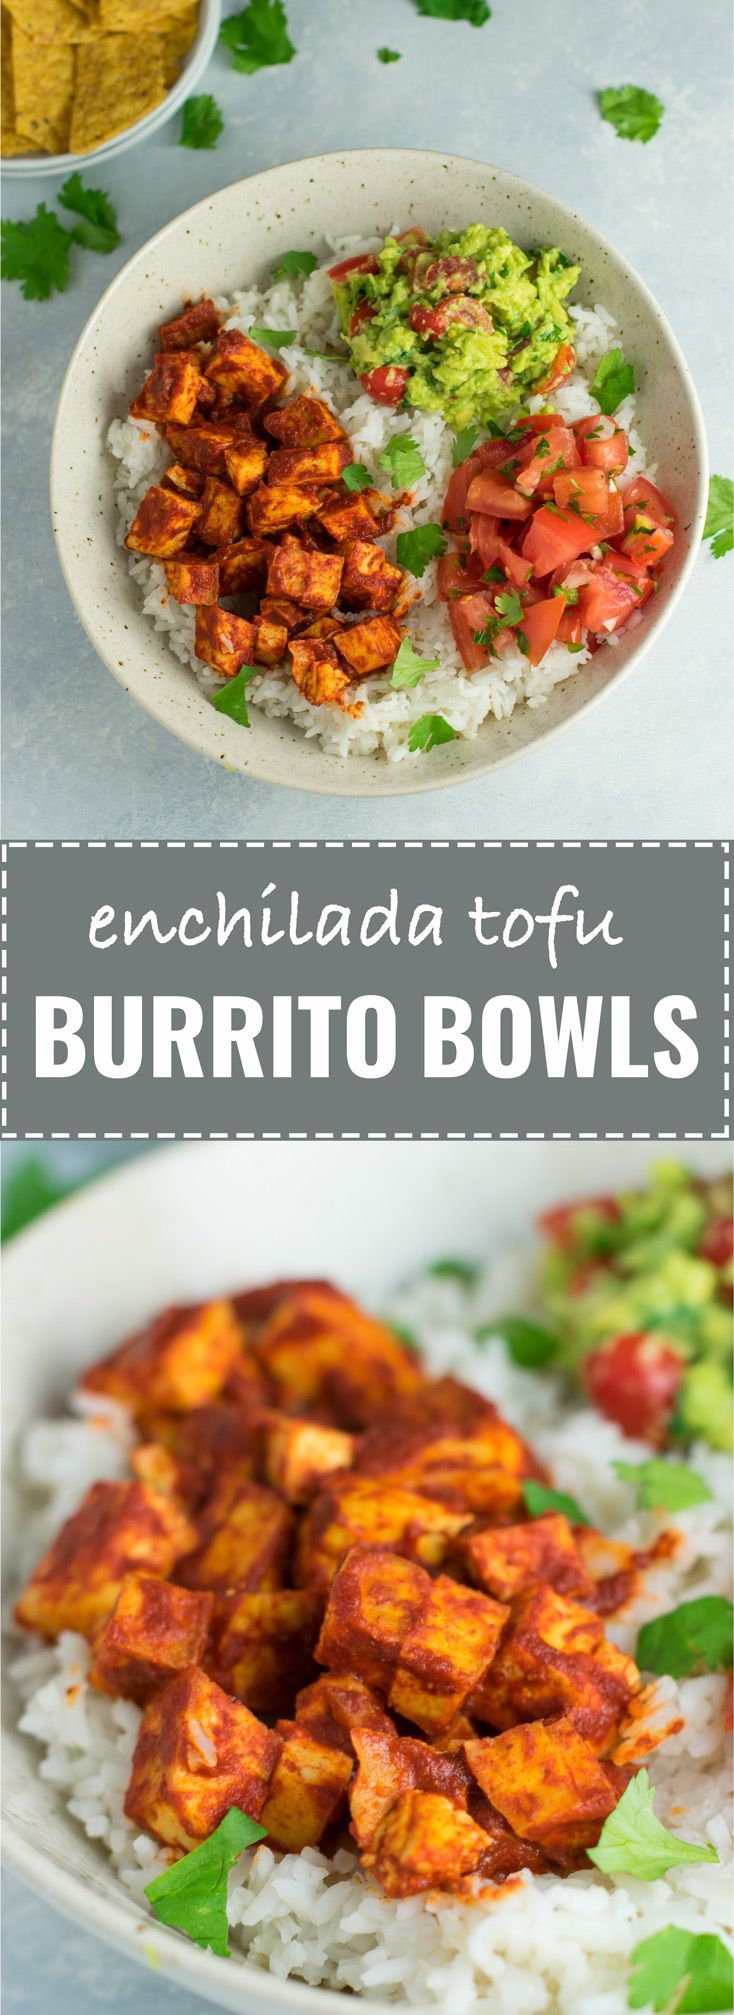 Easy enchilada tofu burrito bowls recipe with homemade guacamole and salsa. A delicious meatless vegan dinner recipe for mexican night. #vegan #burritobowls #tofuburritobowls